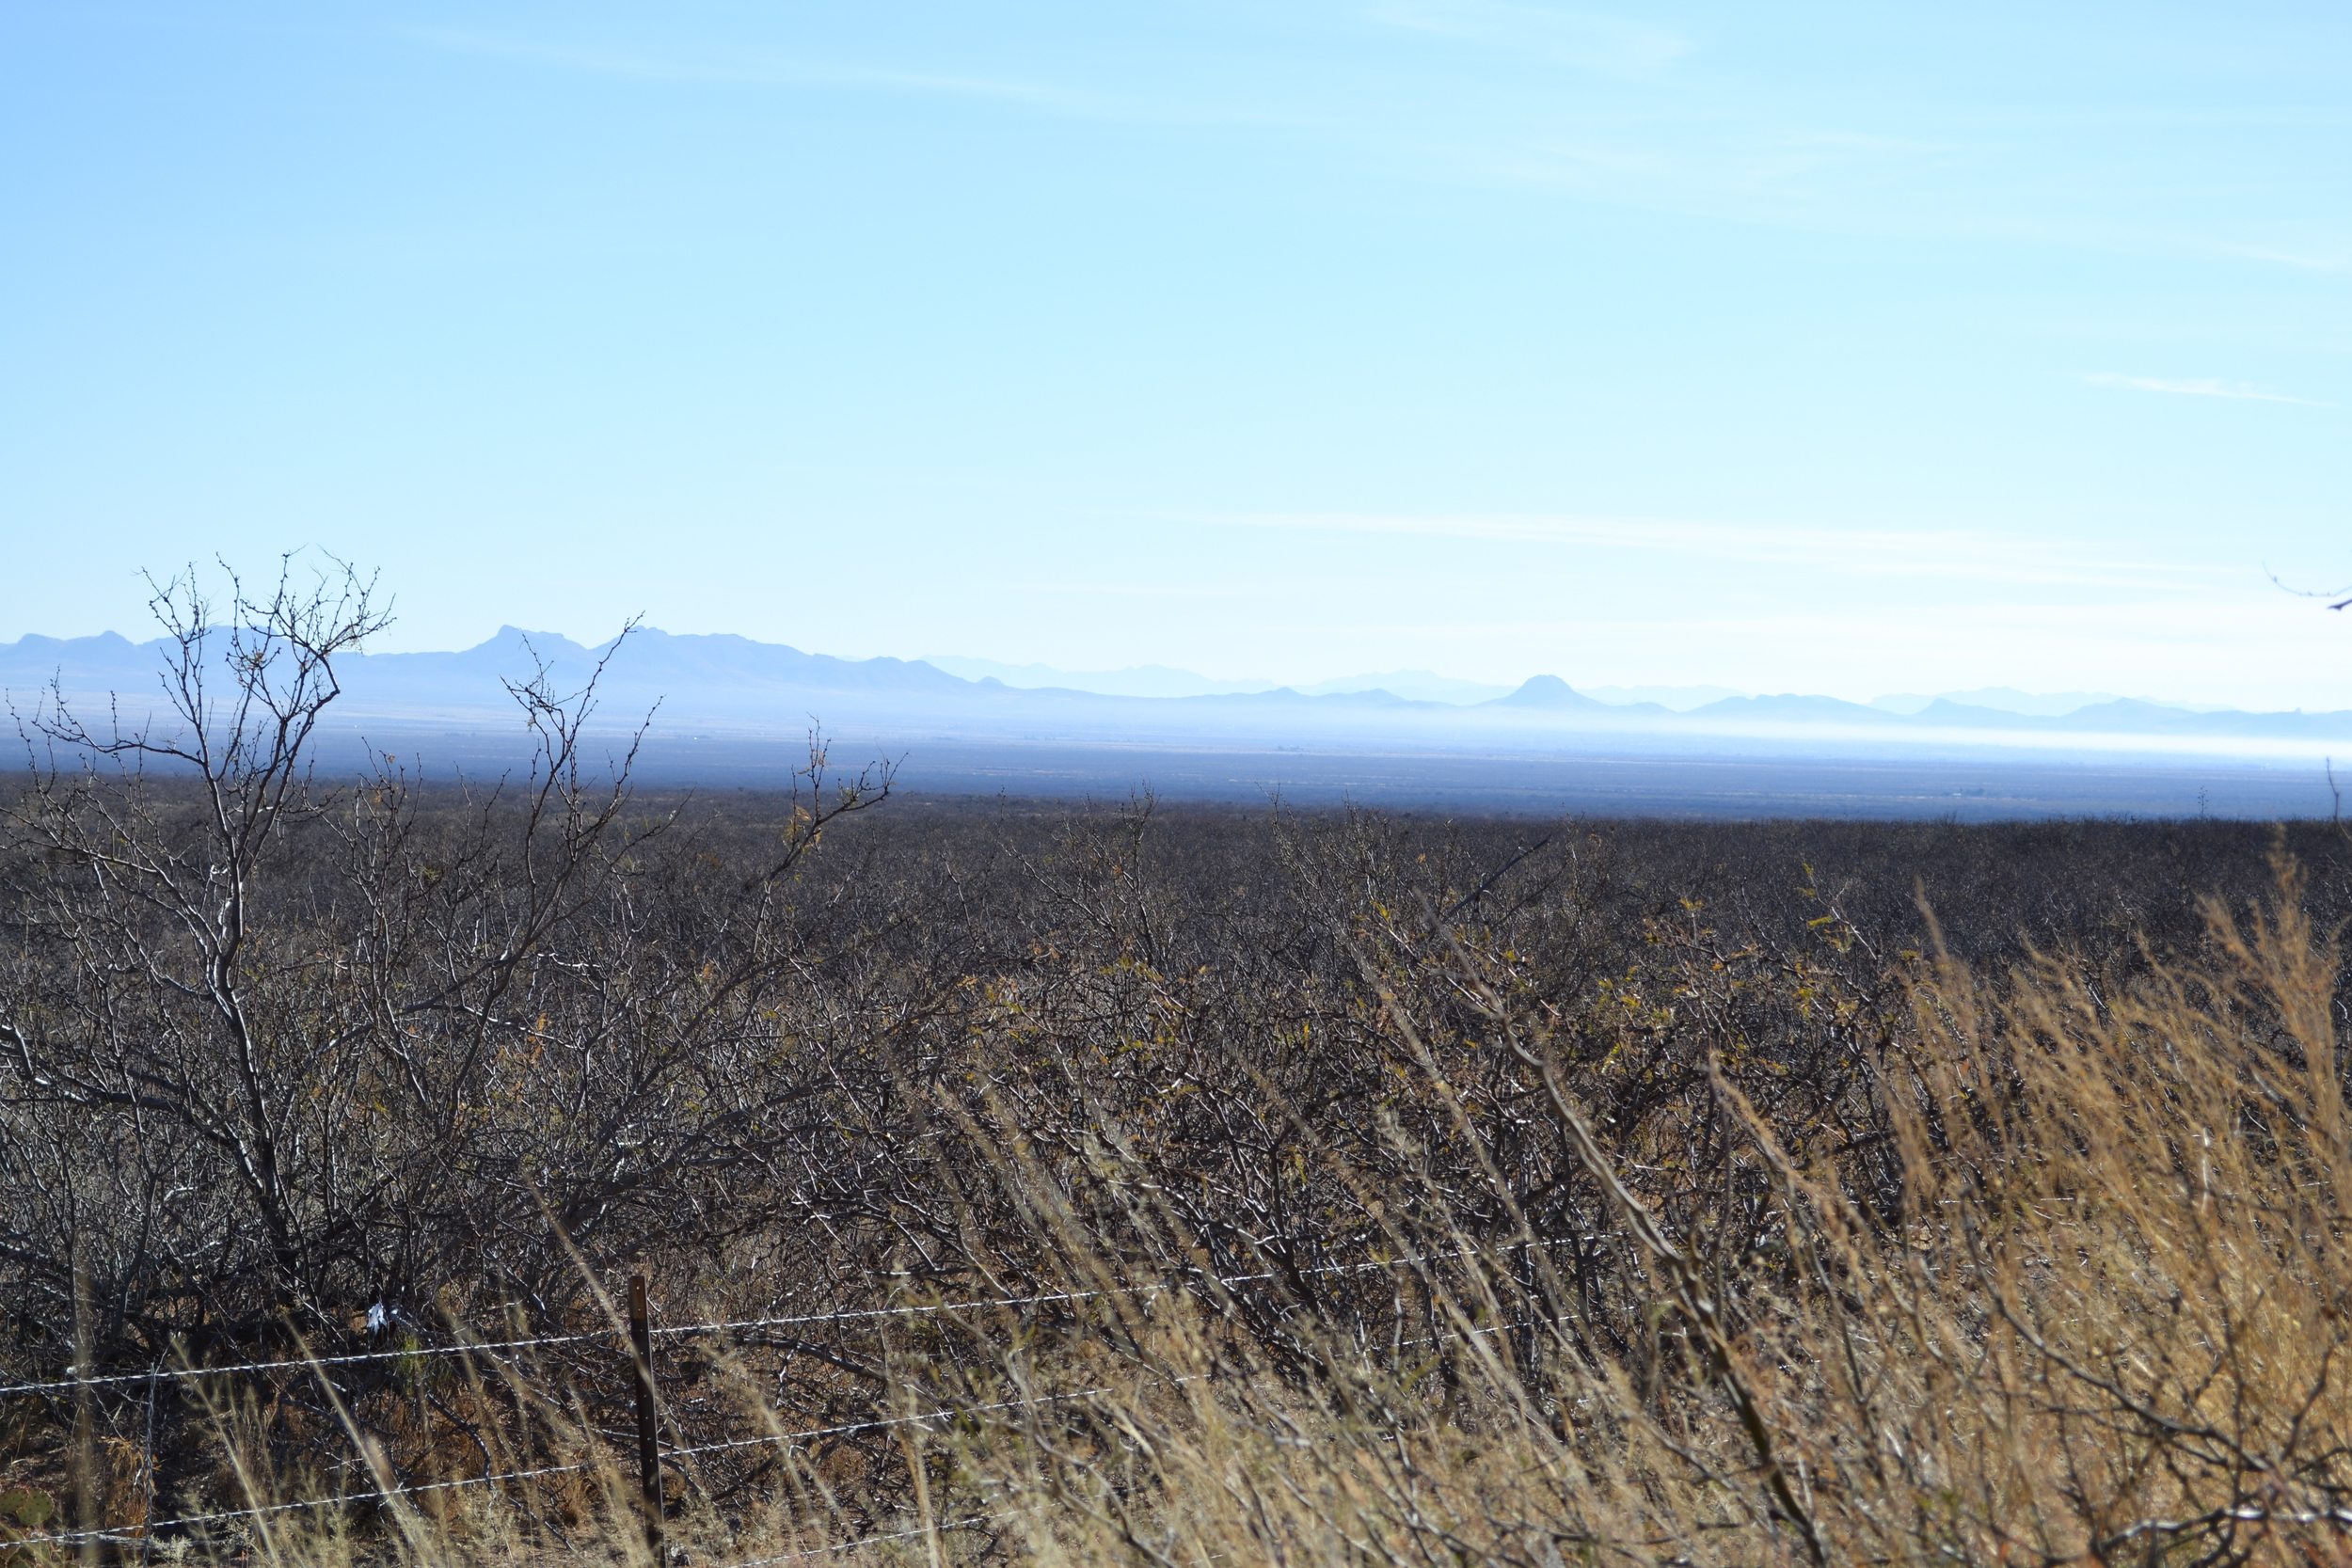 Morning haze near Bisbee, Arizona, on Jan. 4, 2011.